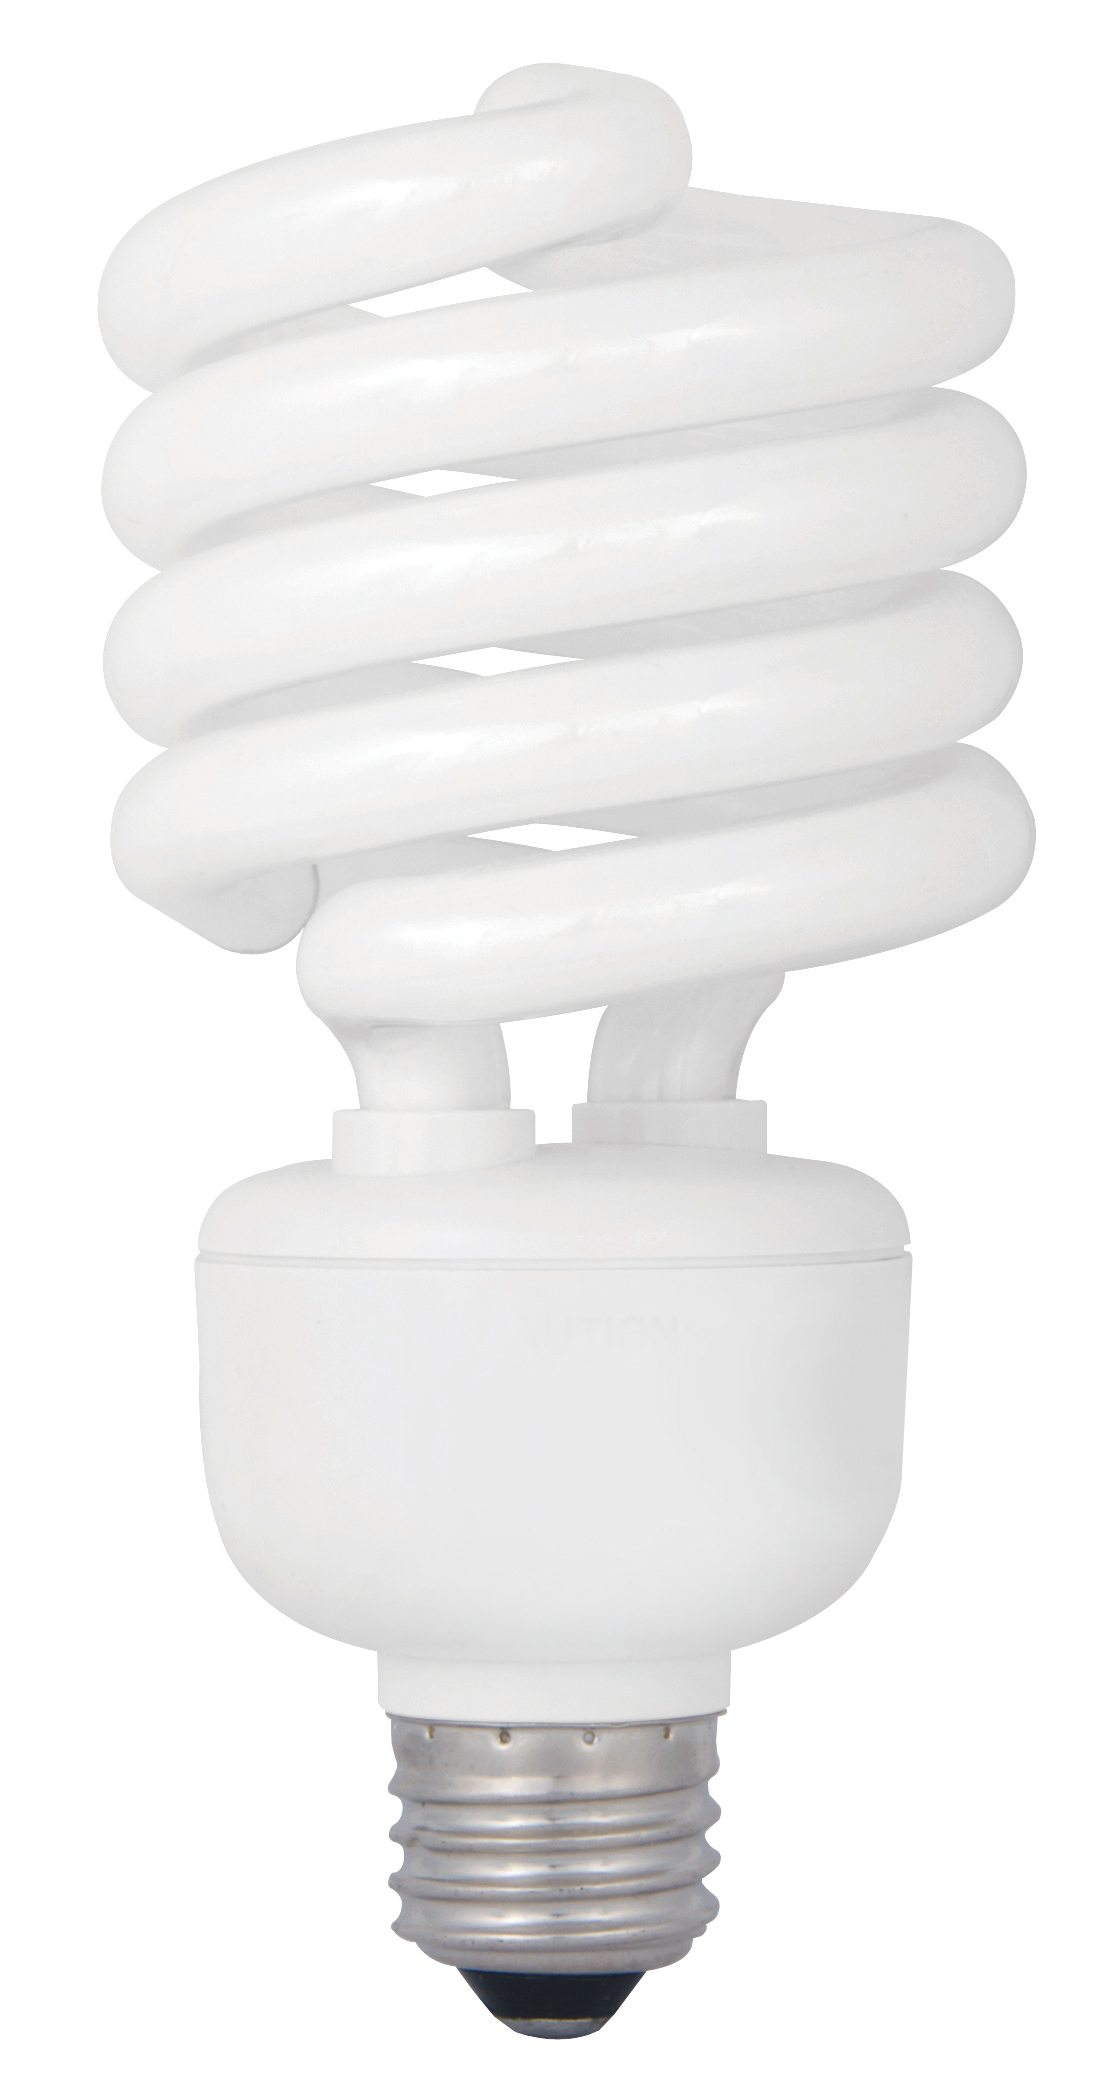 . PlusPng.com energy saving light bulbs photo - 1 - Energy Efficient Light Bulbs PNG